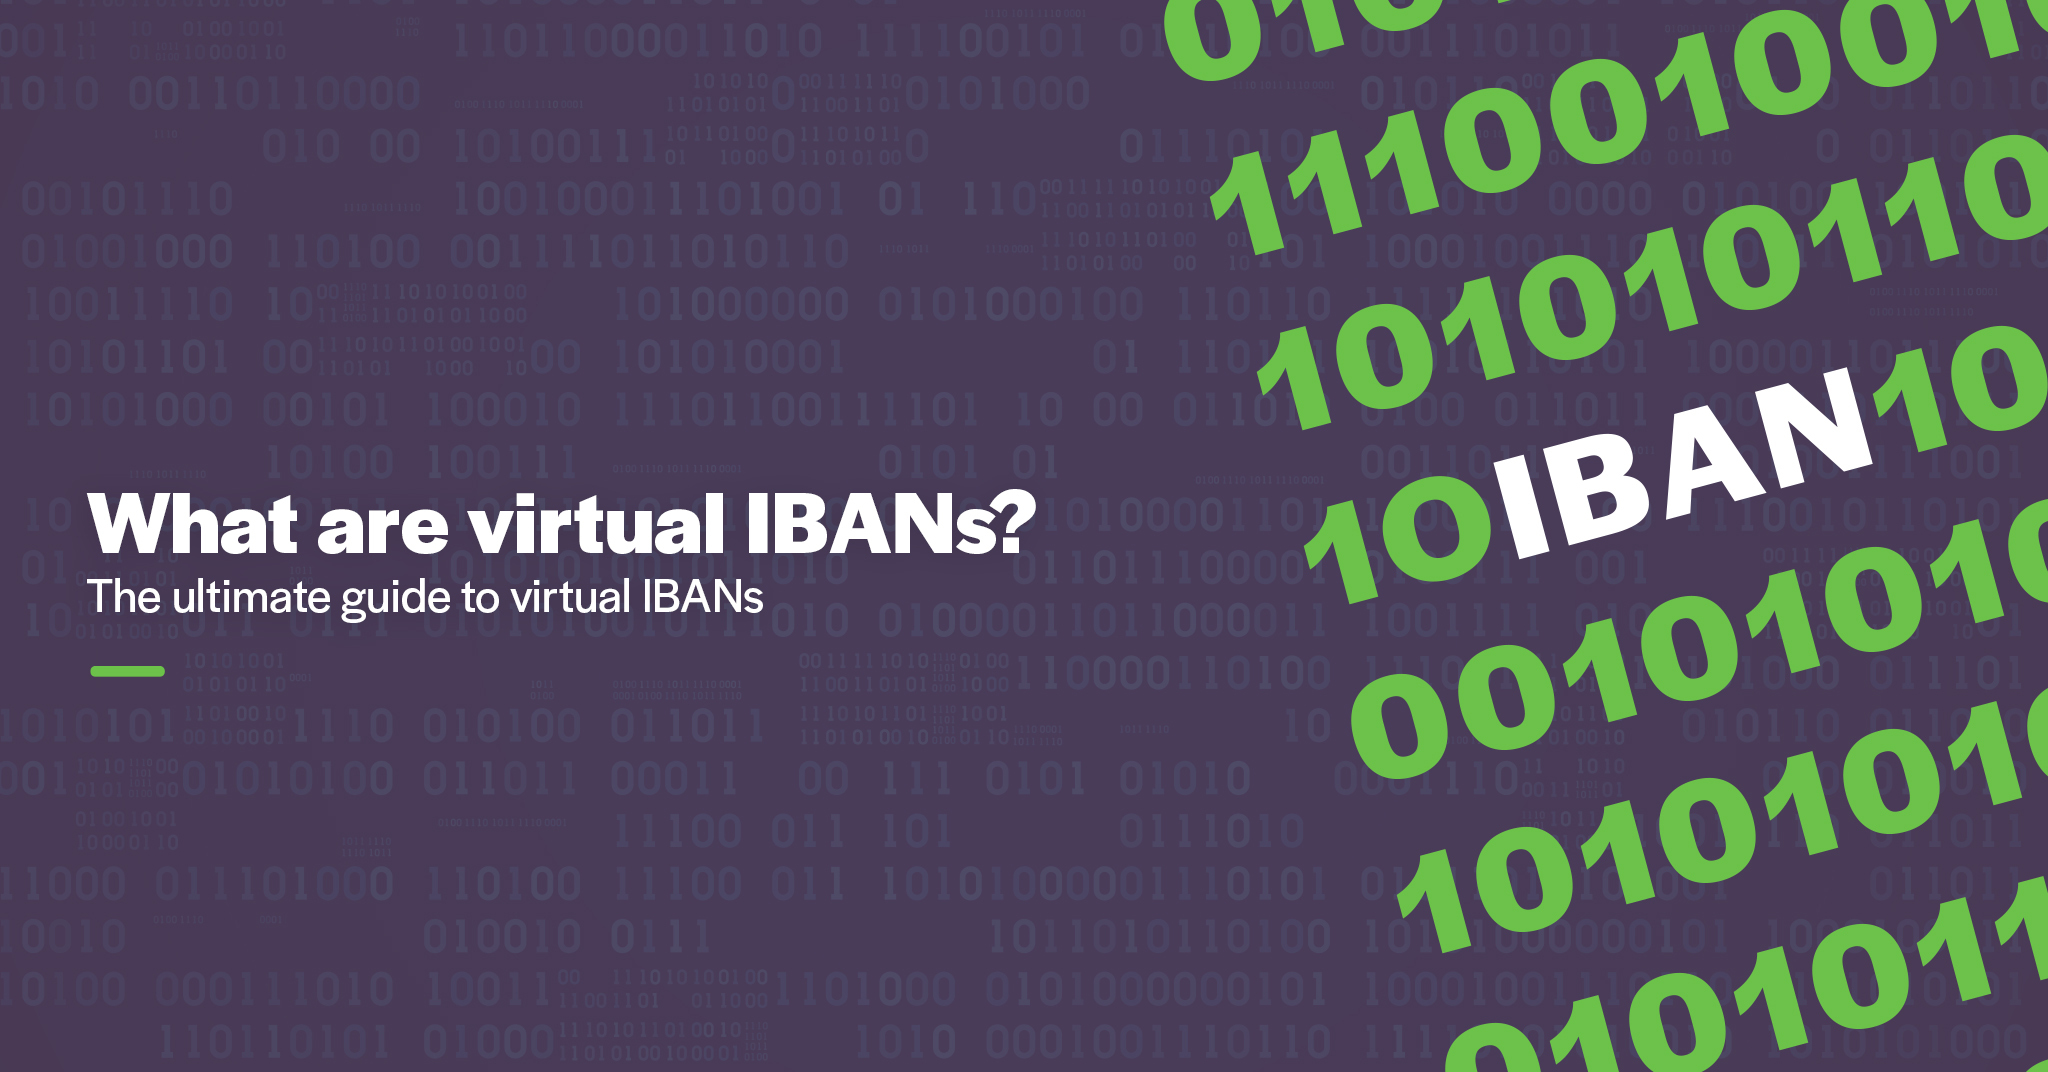 What are virtual IBANs?